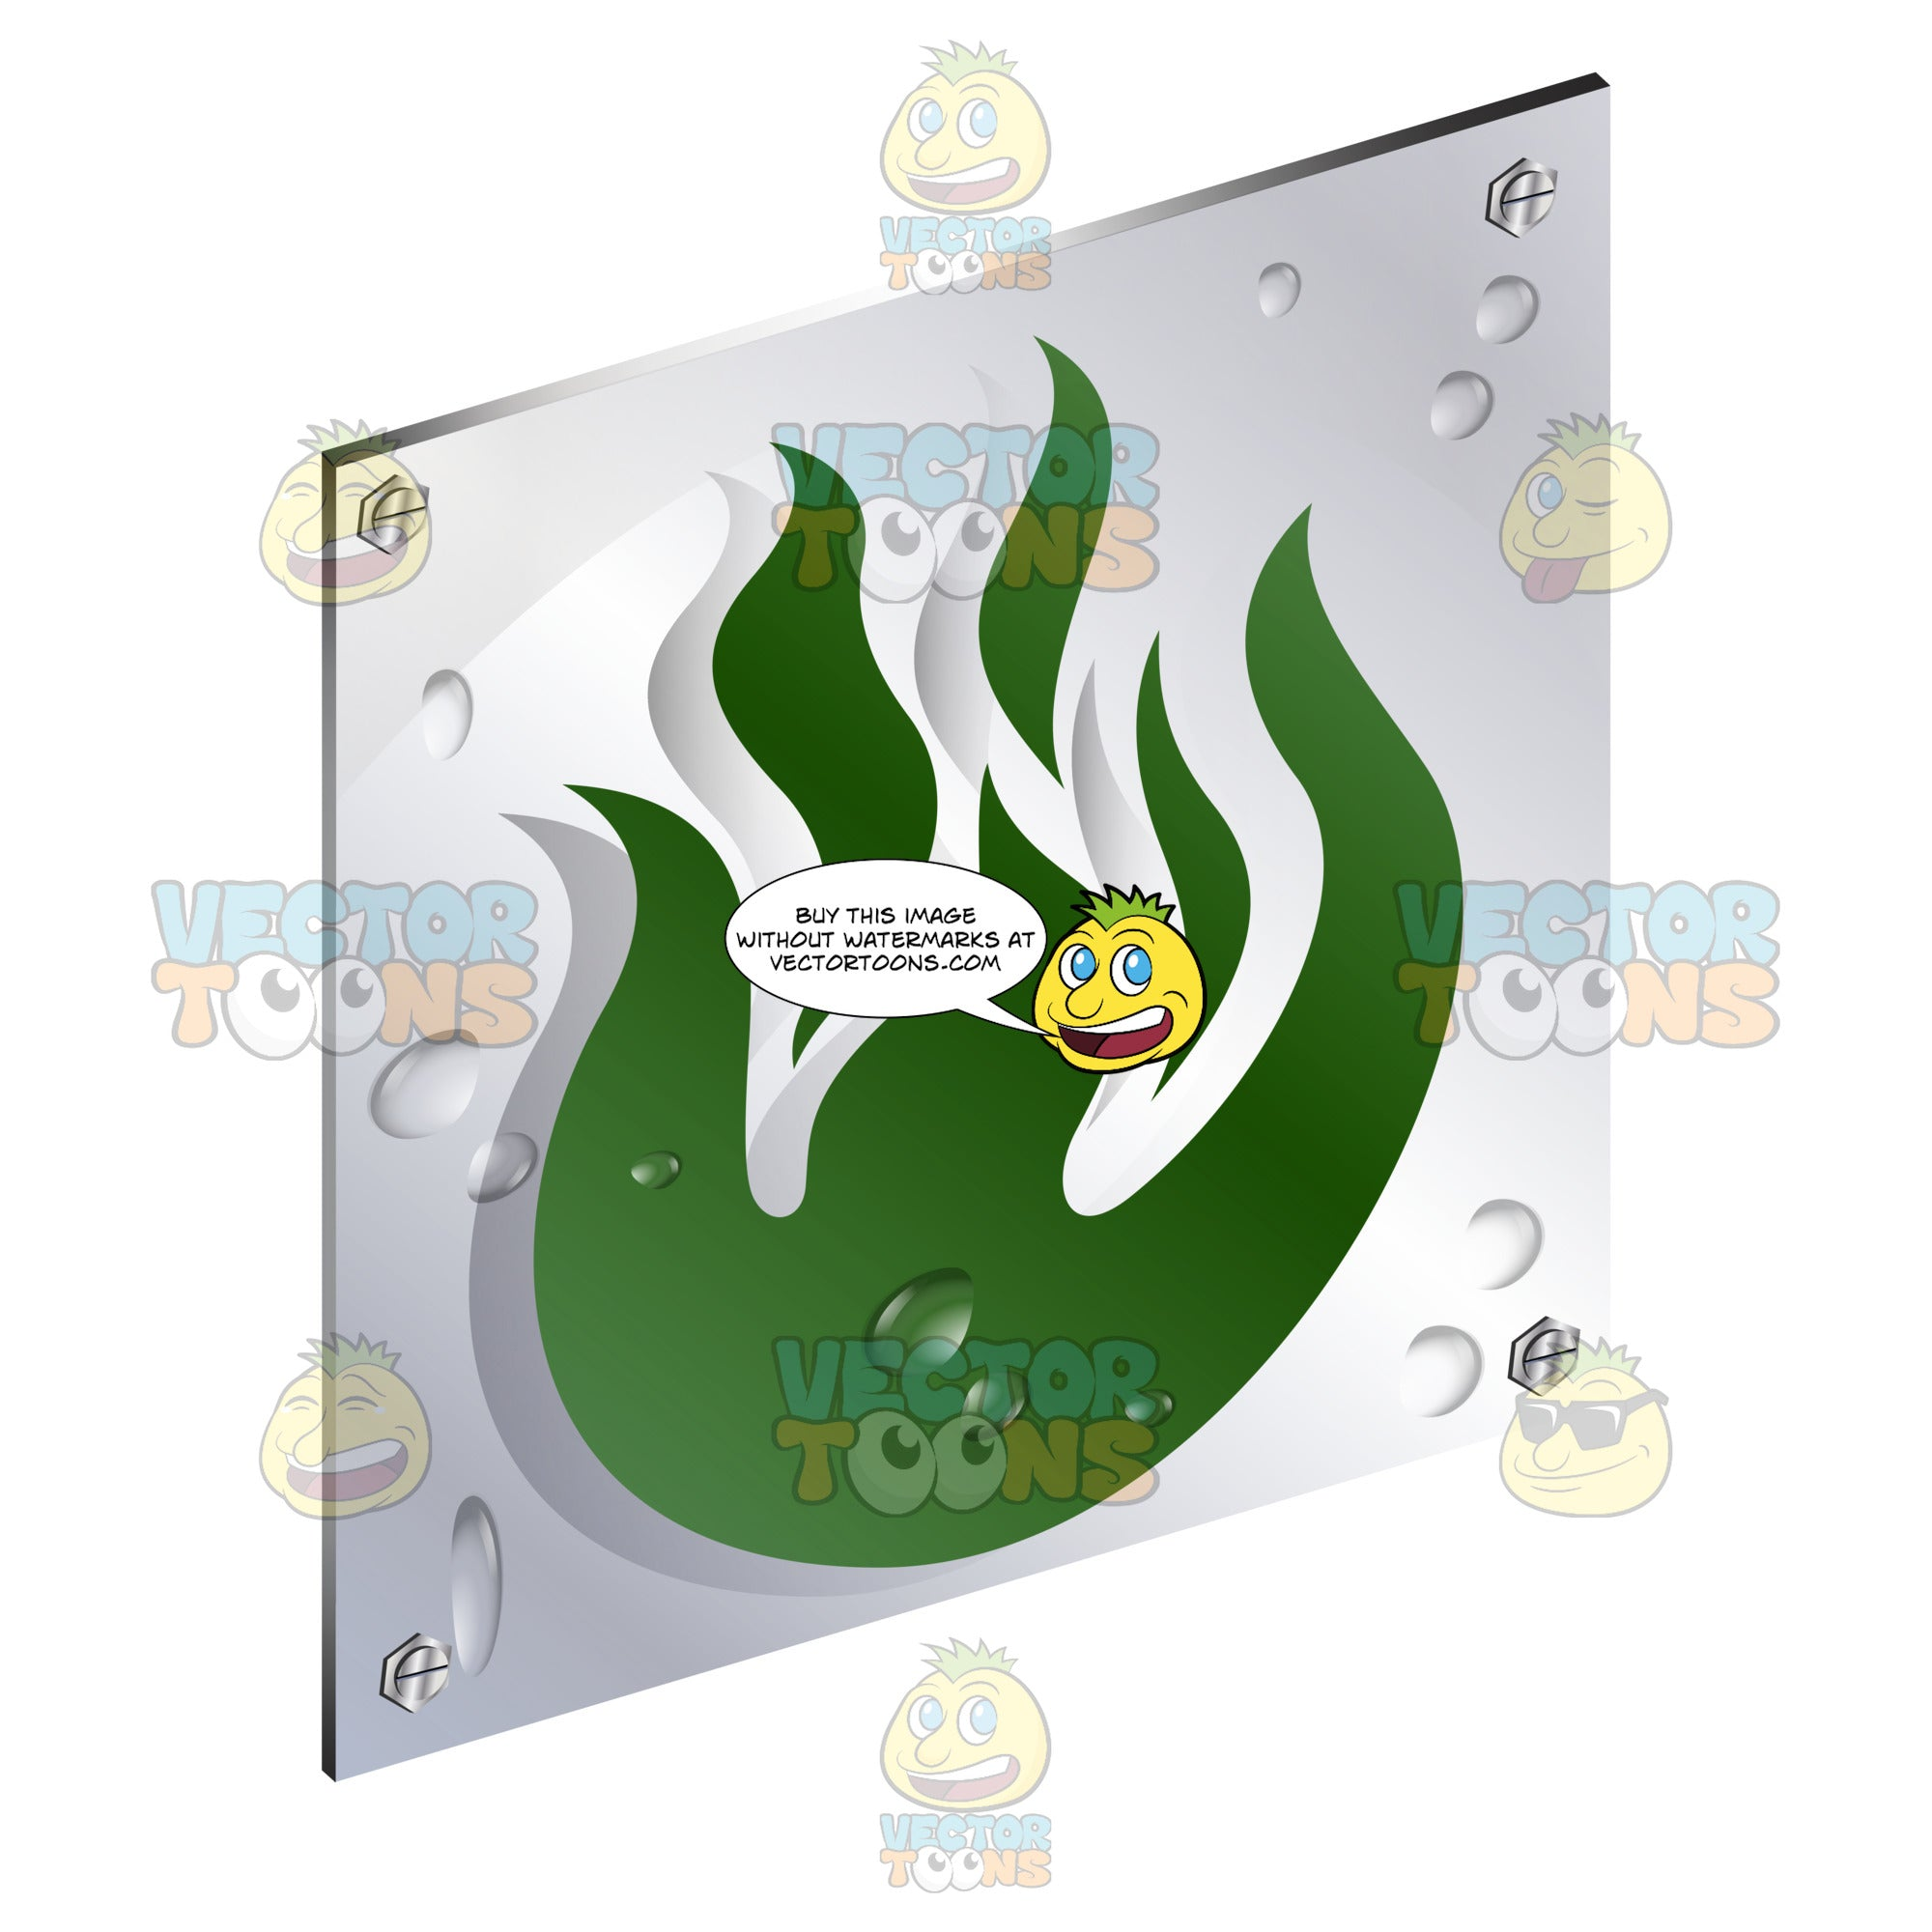 Gree Fire Flames Energy Sign On Metal Plate With Screws Titled Updwards And Right